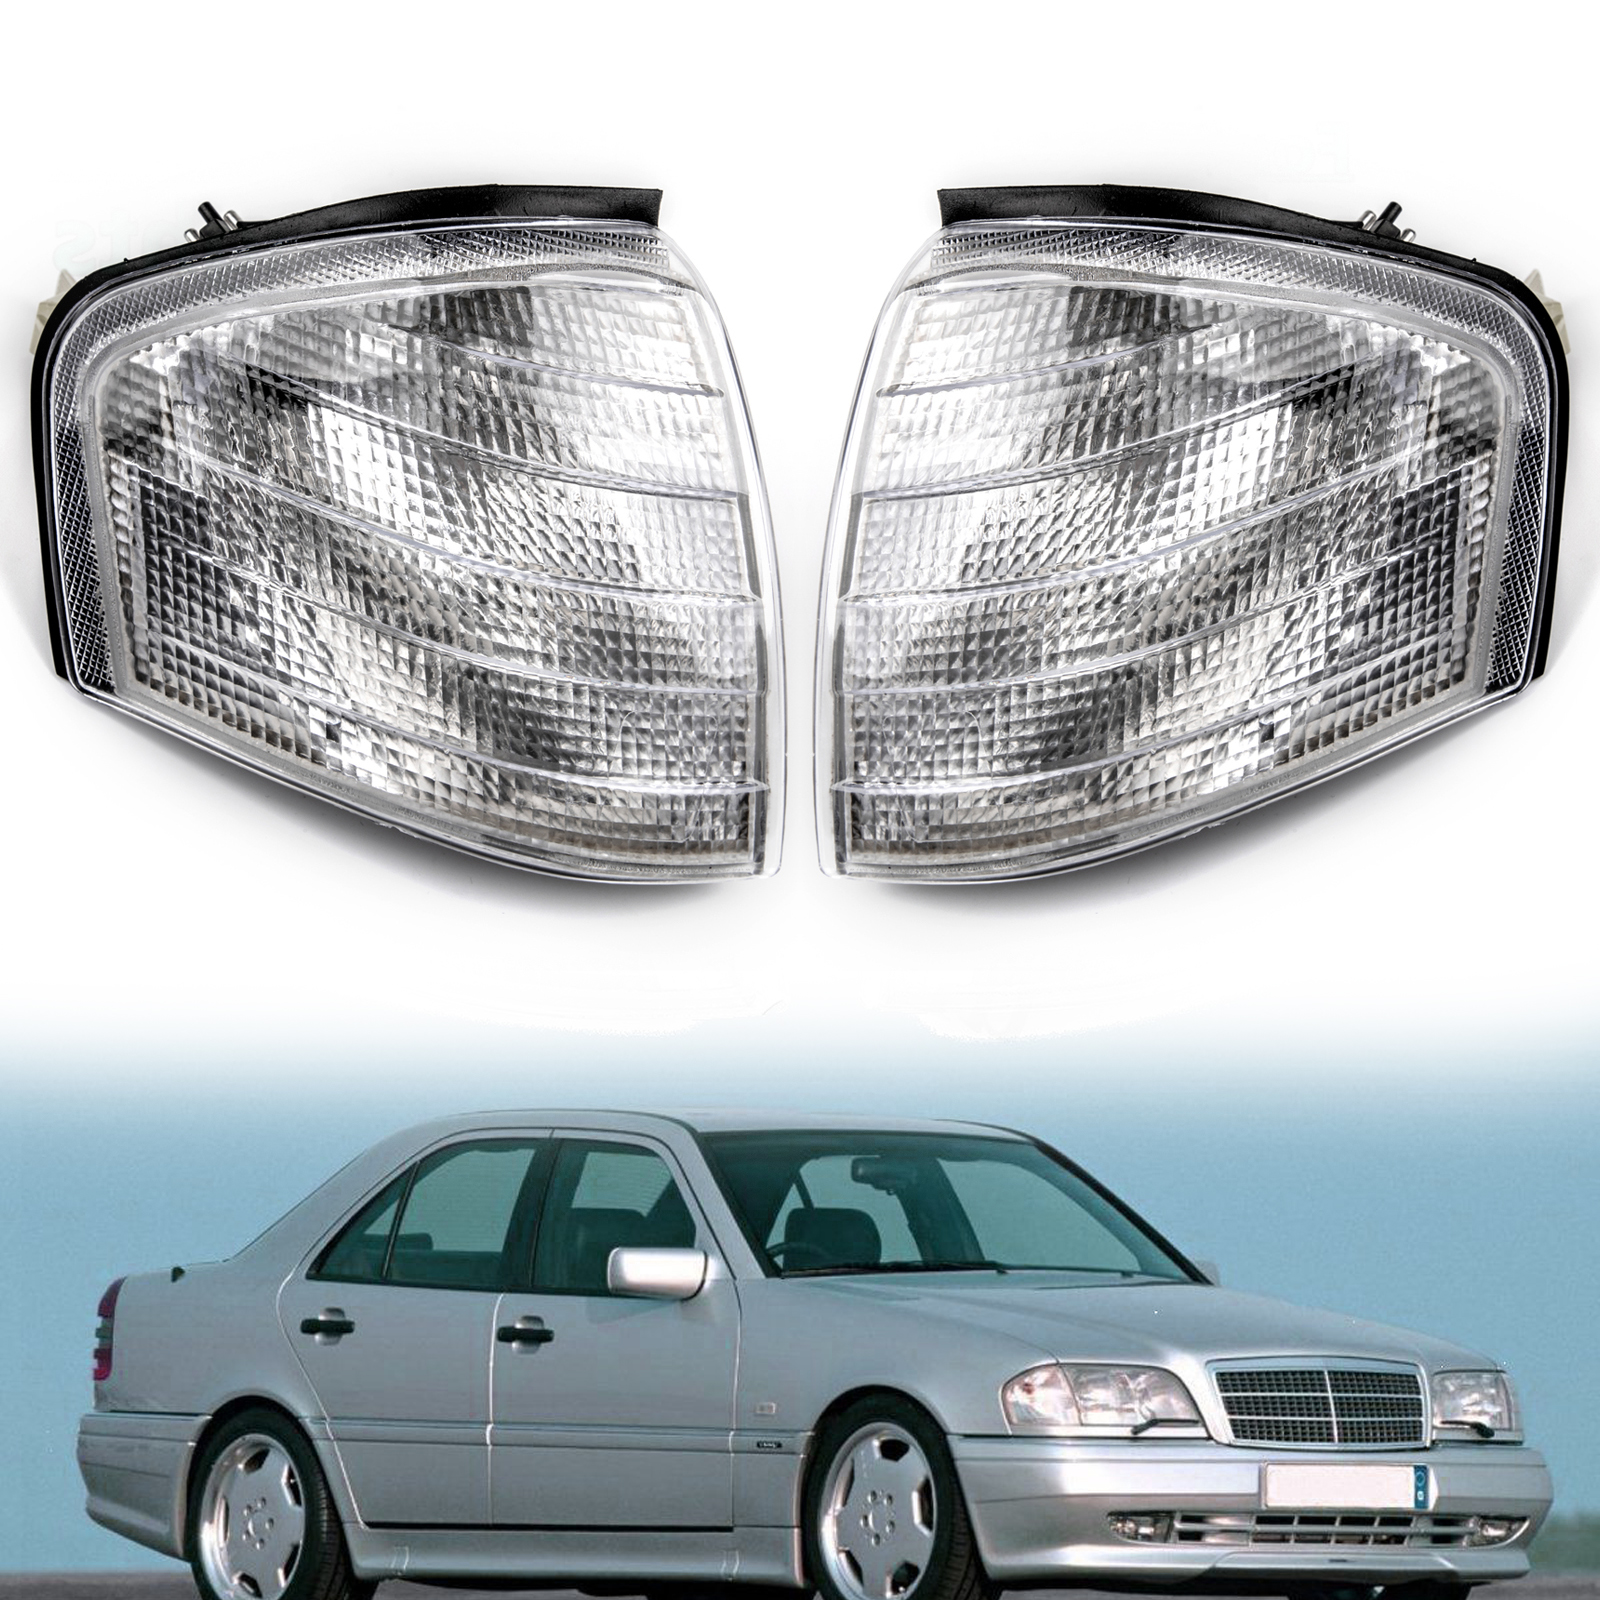 2PCS Side Mirror LED Turn Signal Light For 99-2003 Benz S W220 CL W215 Amber USA